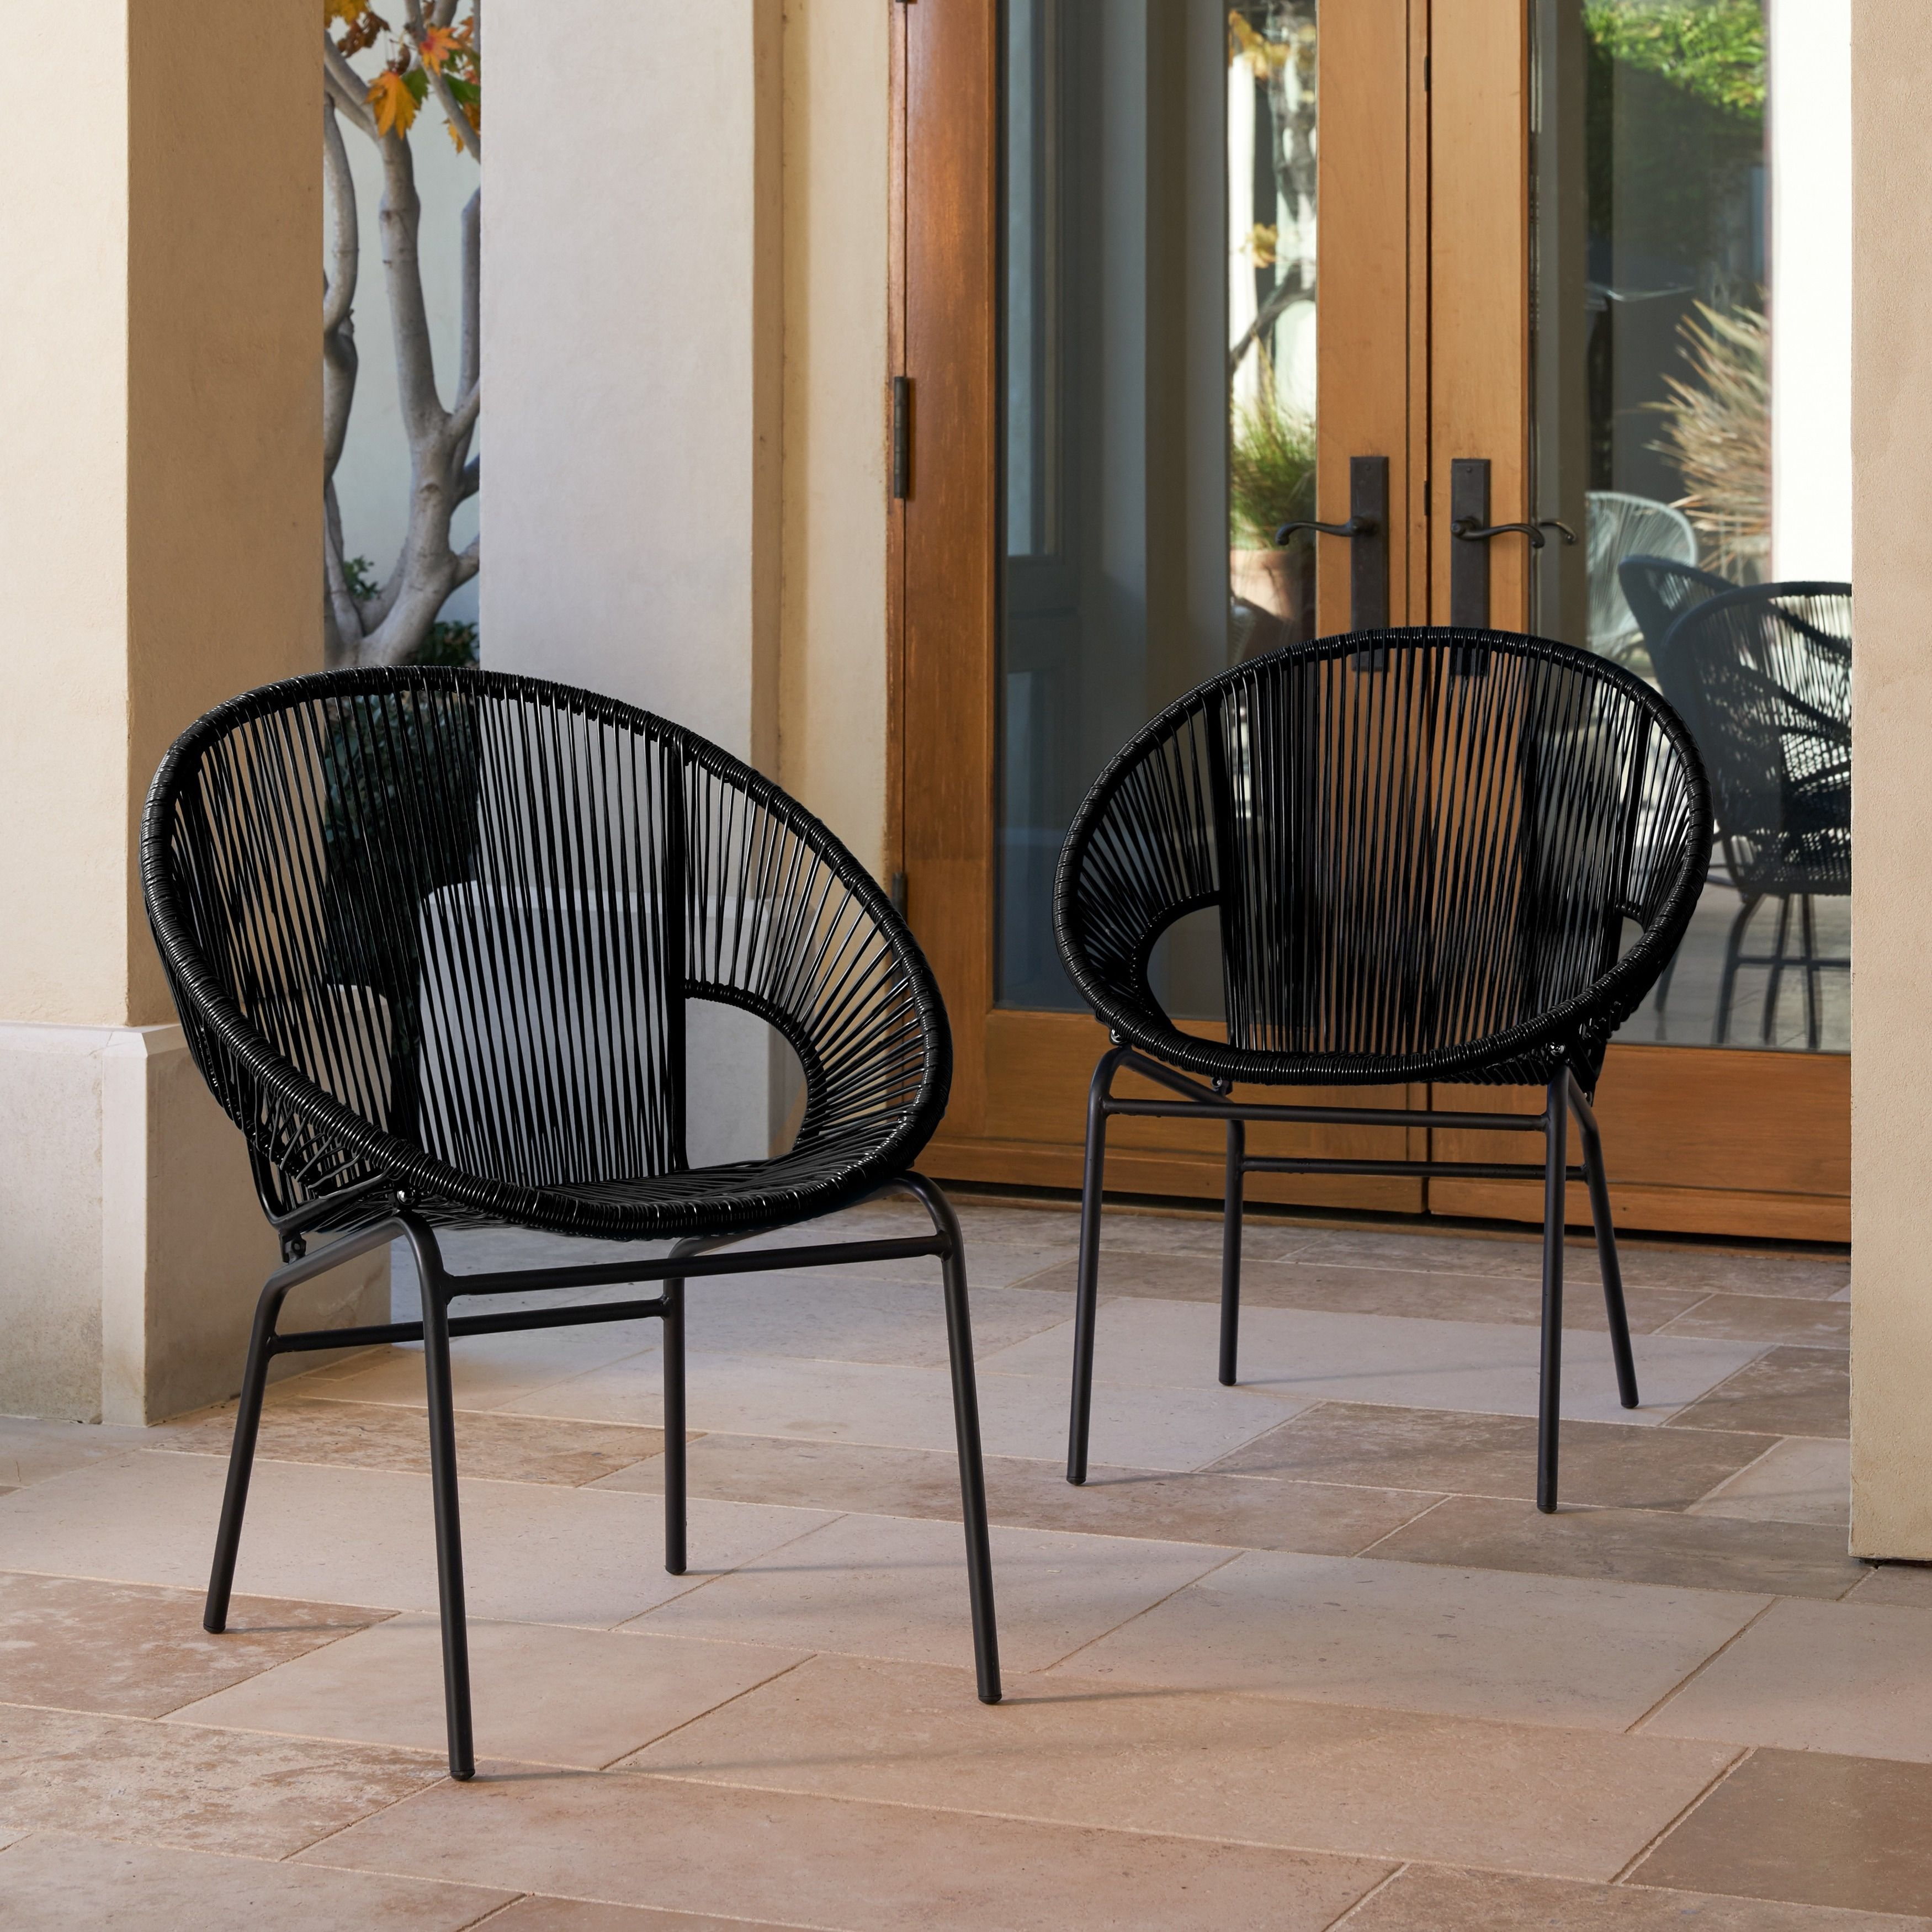 Corvus Sarcelles Woven Wicker Patio Chairs Set Of 2 Free Shipping Today 17805619